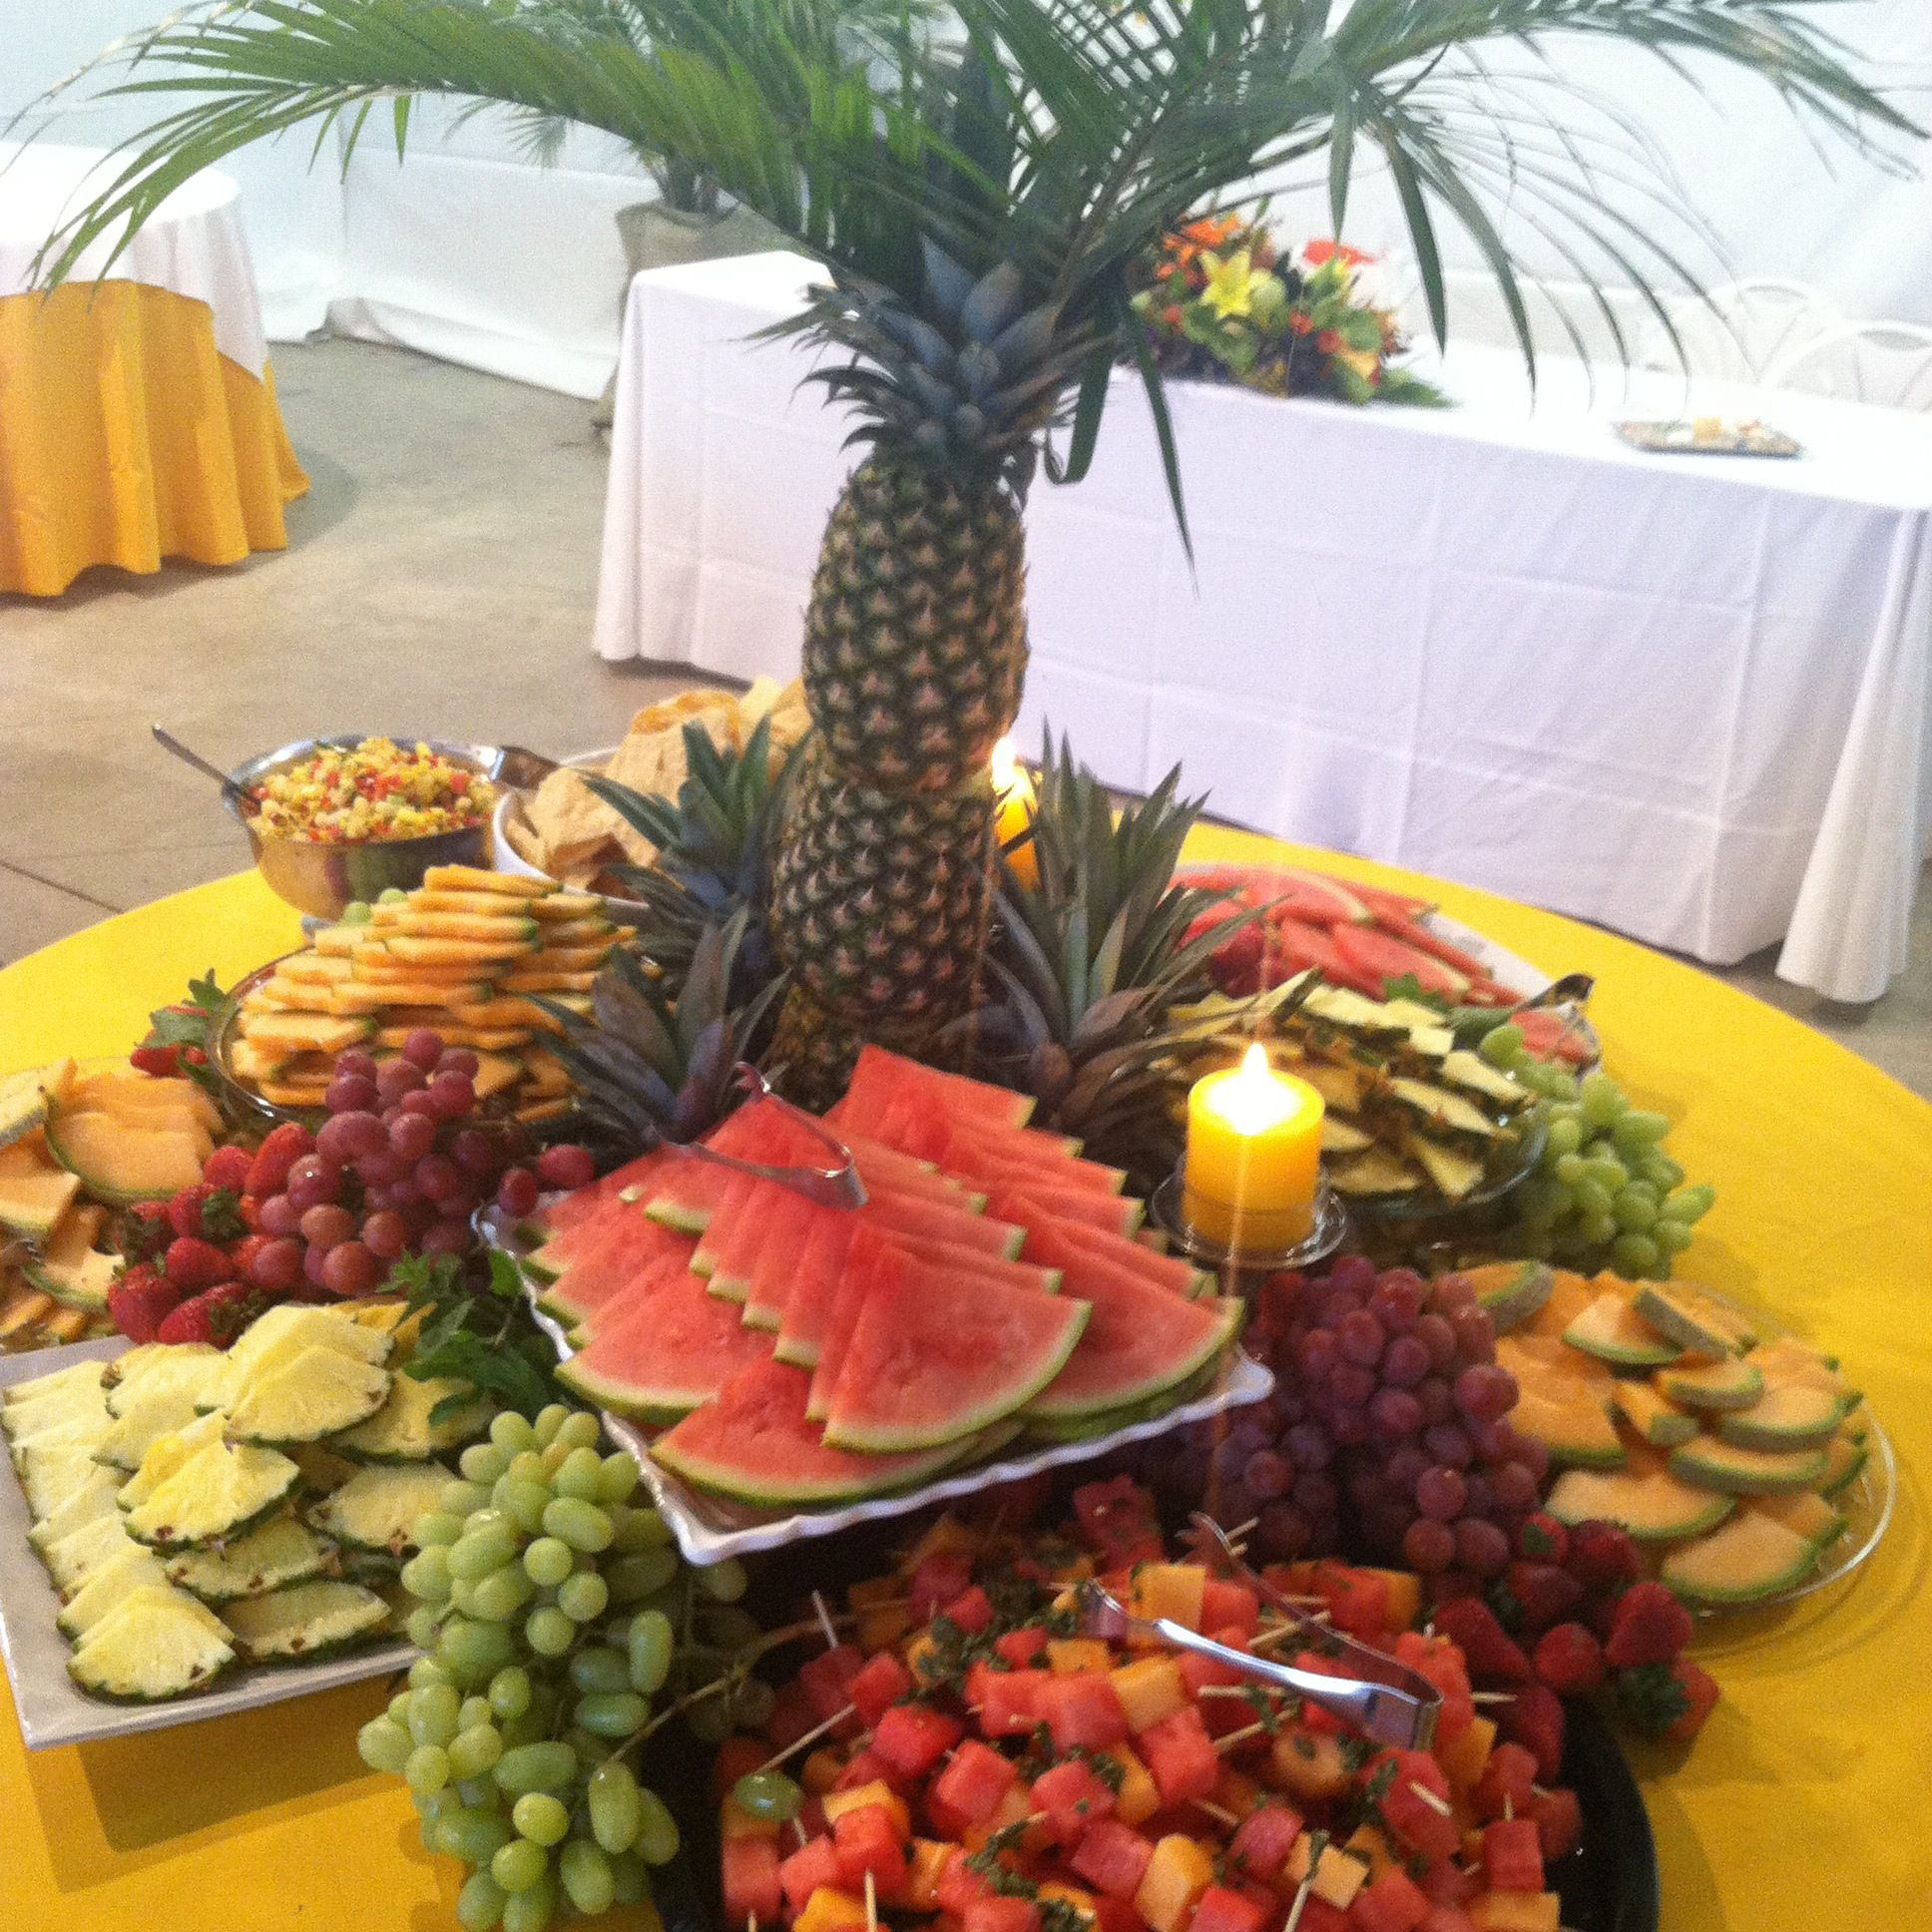 The Fruit Display U Did For A Wedding Reception Simply Gourmet Catering Easton